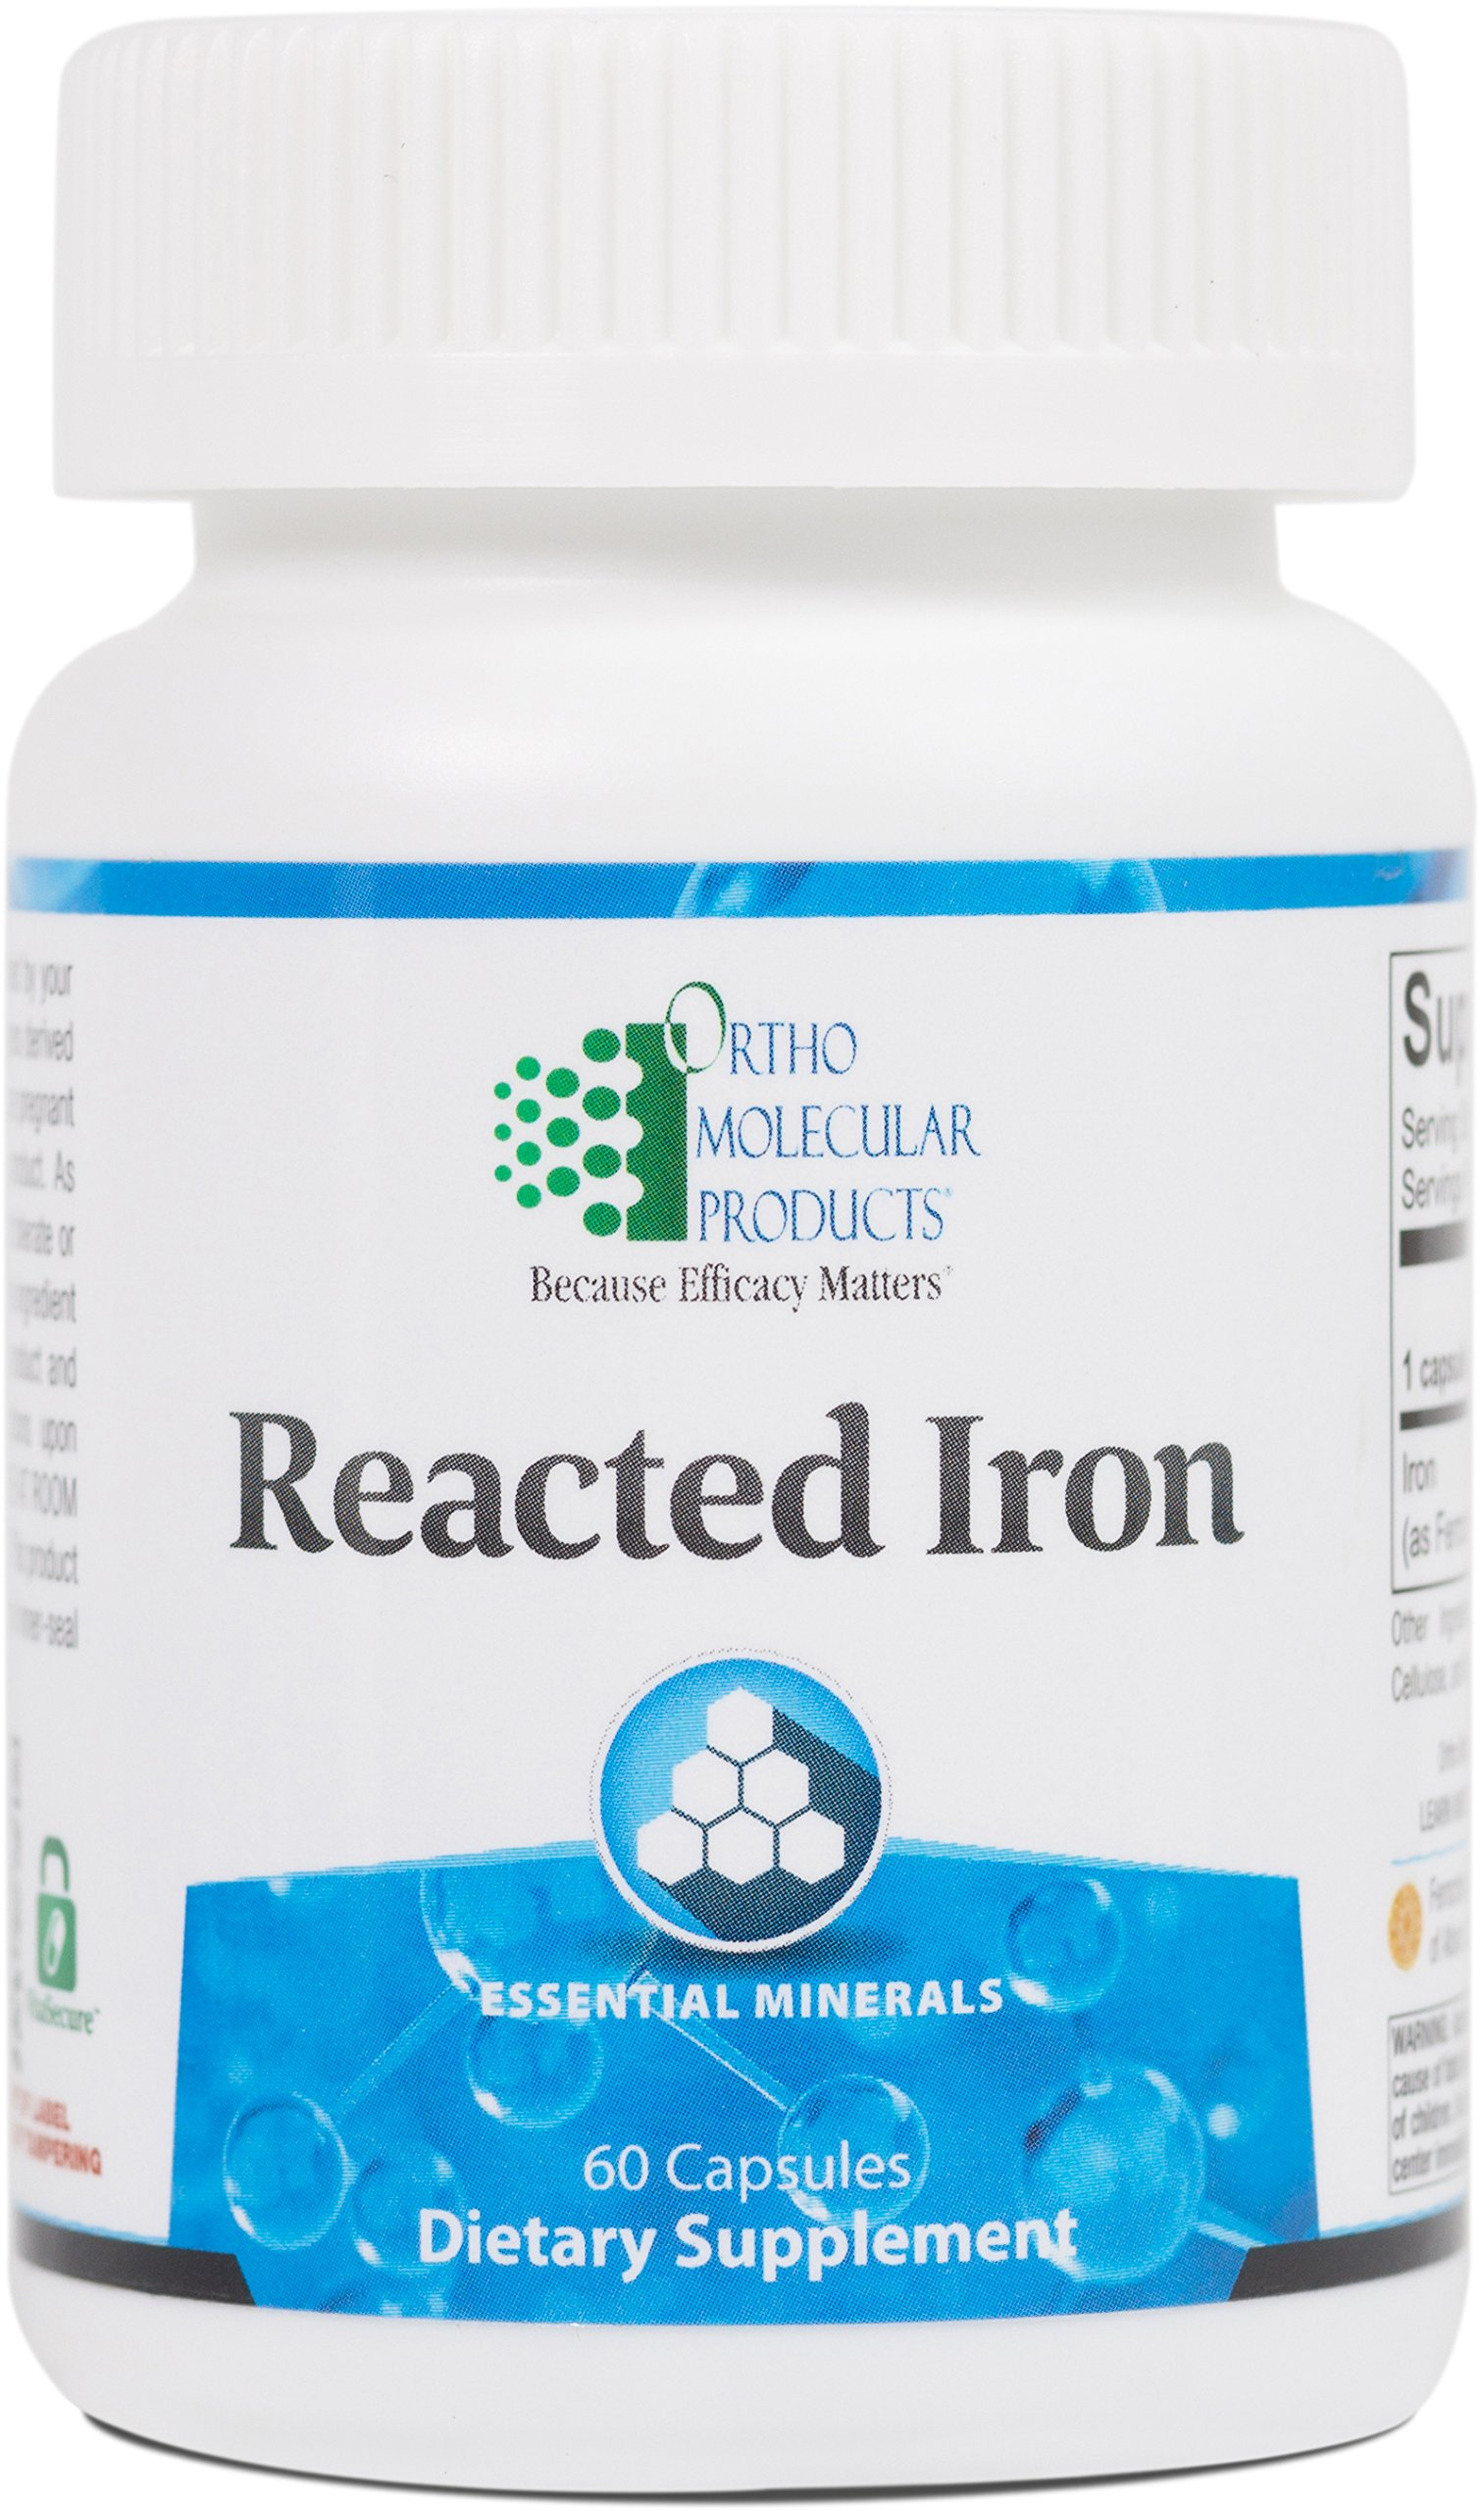 Ortho Molecular - Reacted Iron - 60 Capsules